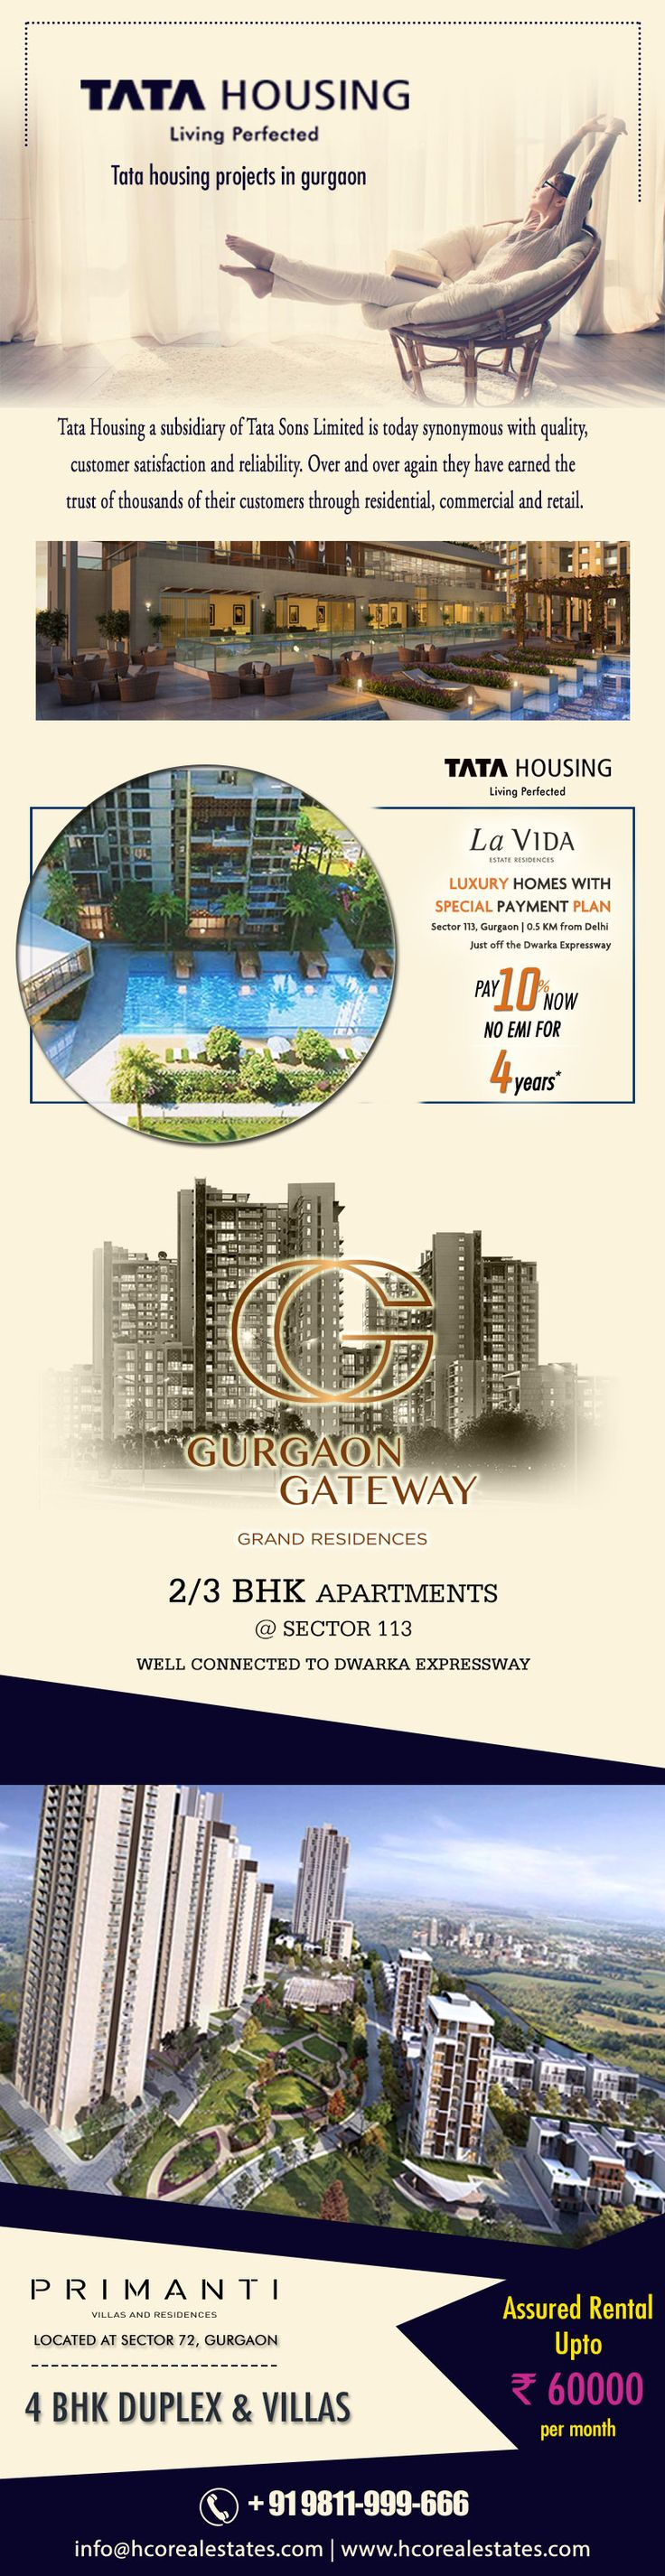 One of the leading names Tata Housing is offering projects named Tata La Vida Gurgaon, Tata Gurgaon Gateway and Tata Primanti where spaces apartments, villas, duplex and penthouse- https://www.hcorealestates.com/builder/tata-new-projects/